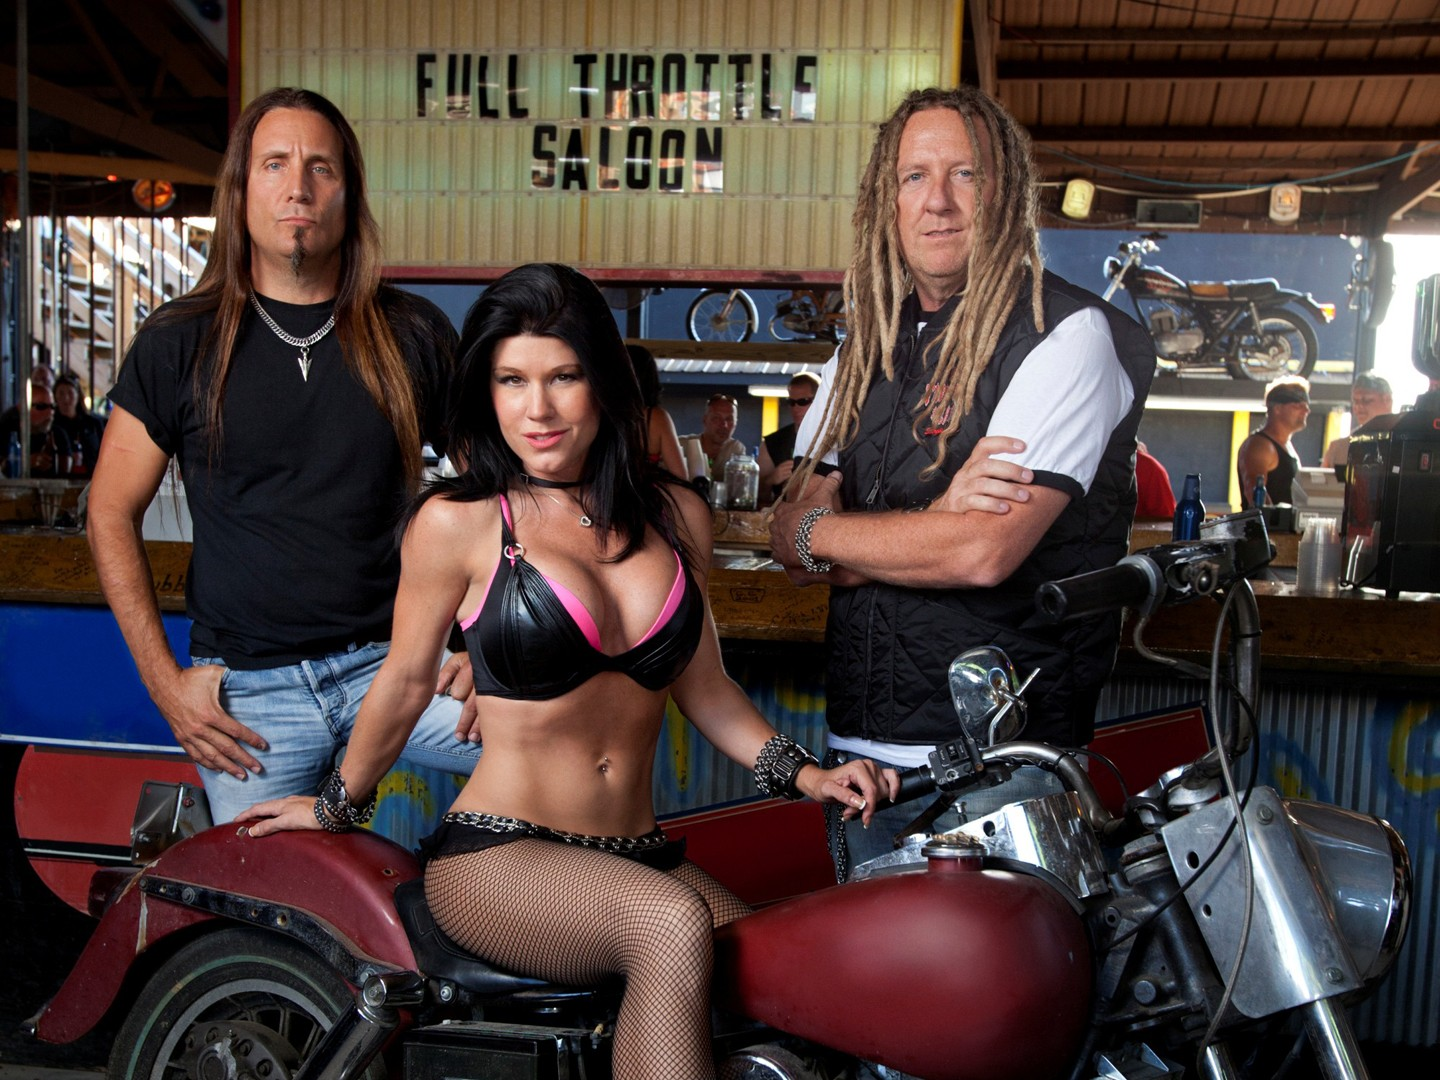 Michael Ballard: From Regular Joe to $5 Million Reality Television ...full throttle saloon